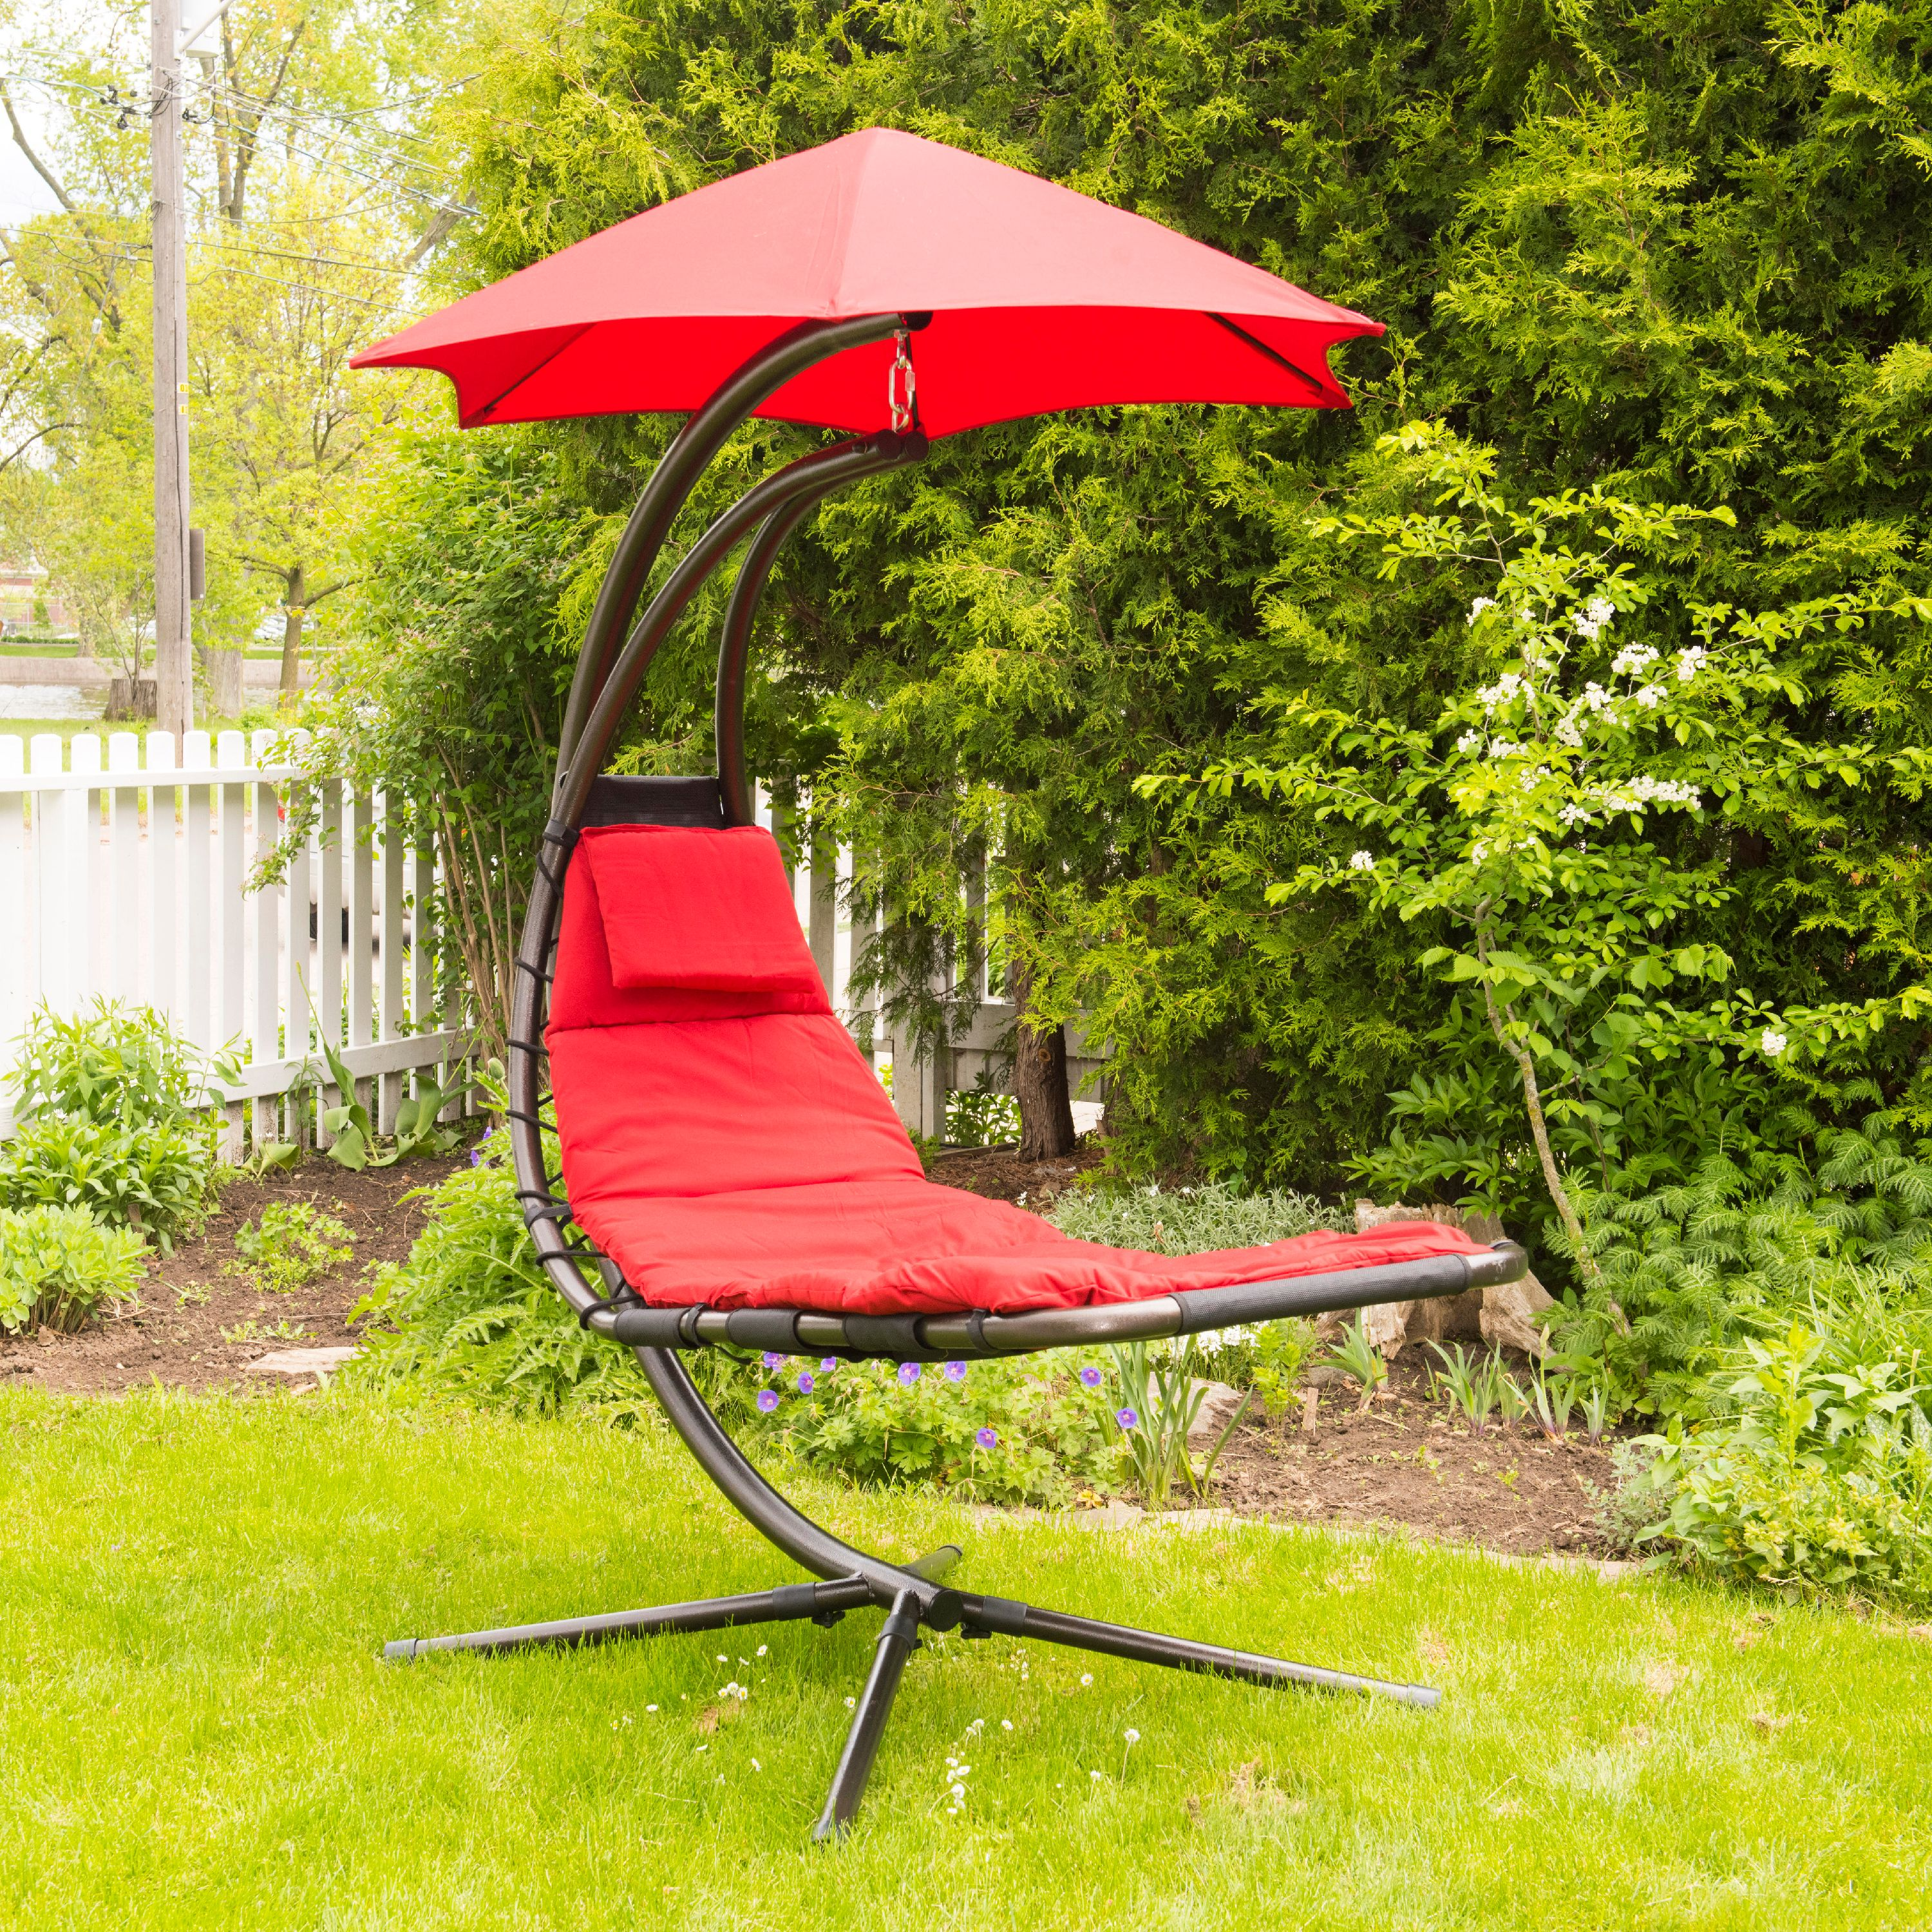 Vivere Original Dream Chair in Cherry Red